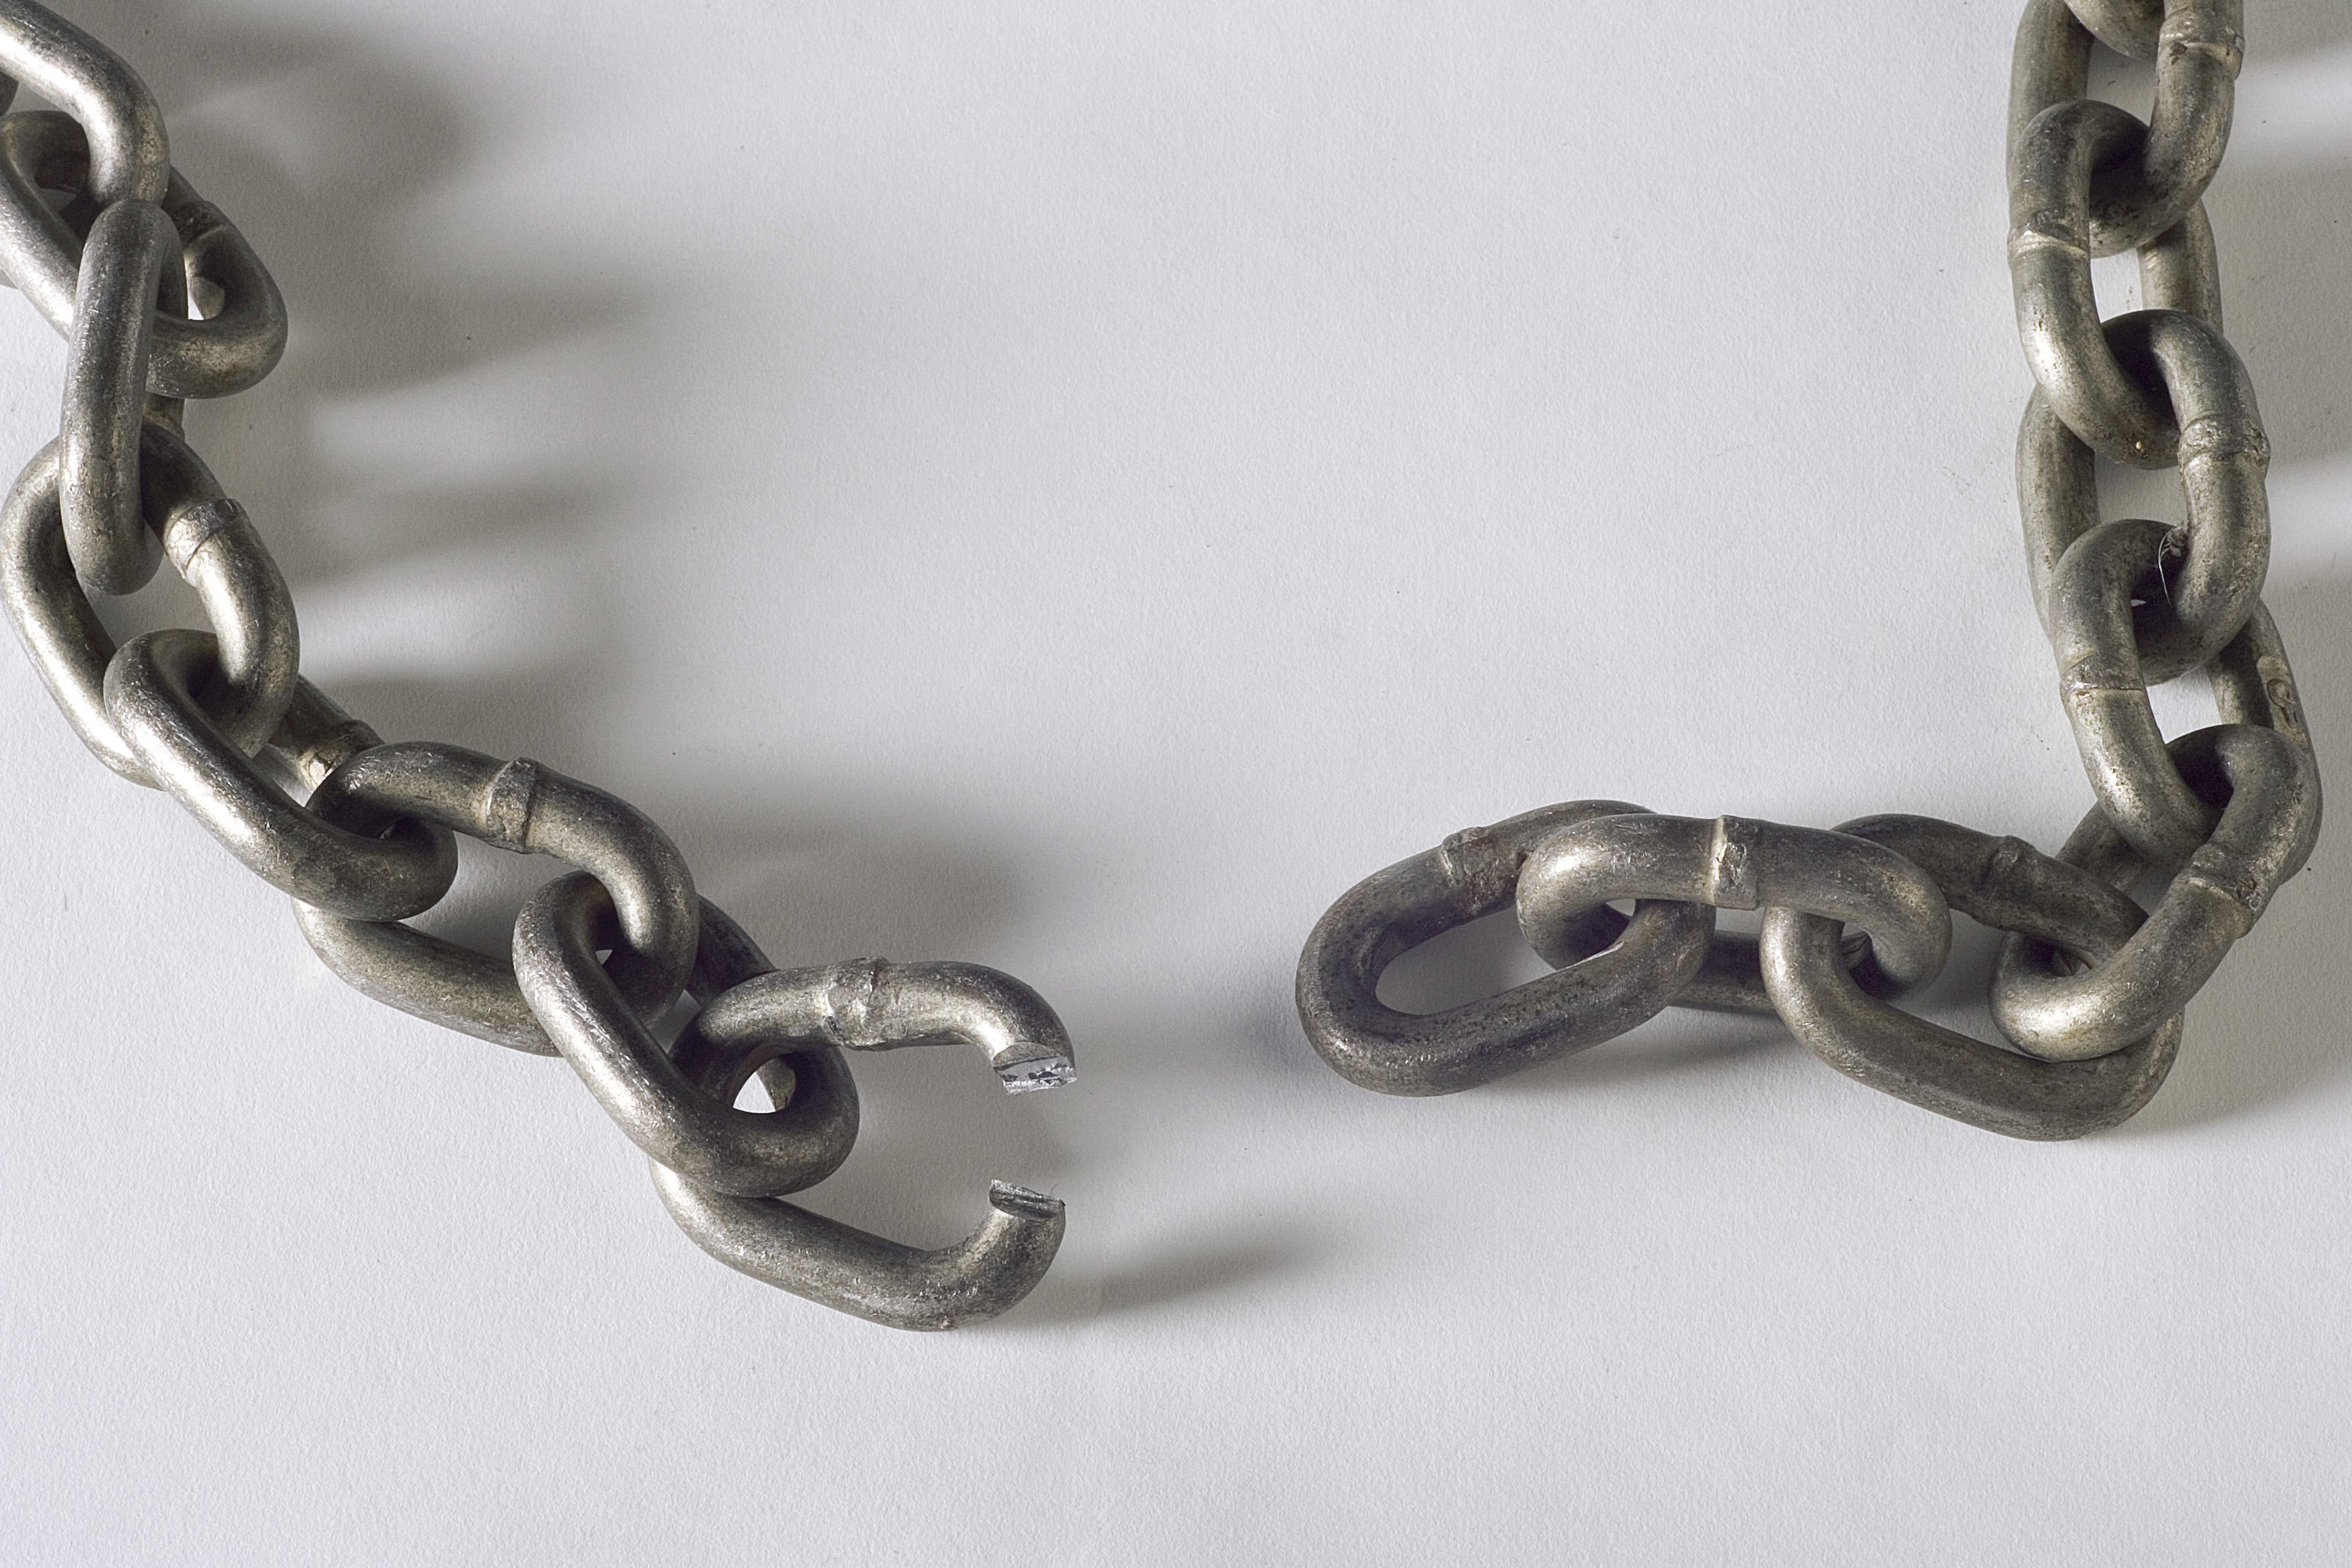 A heavy chain shown with a broken link.